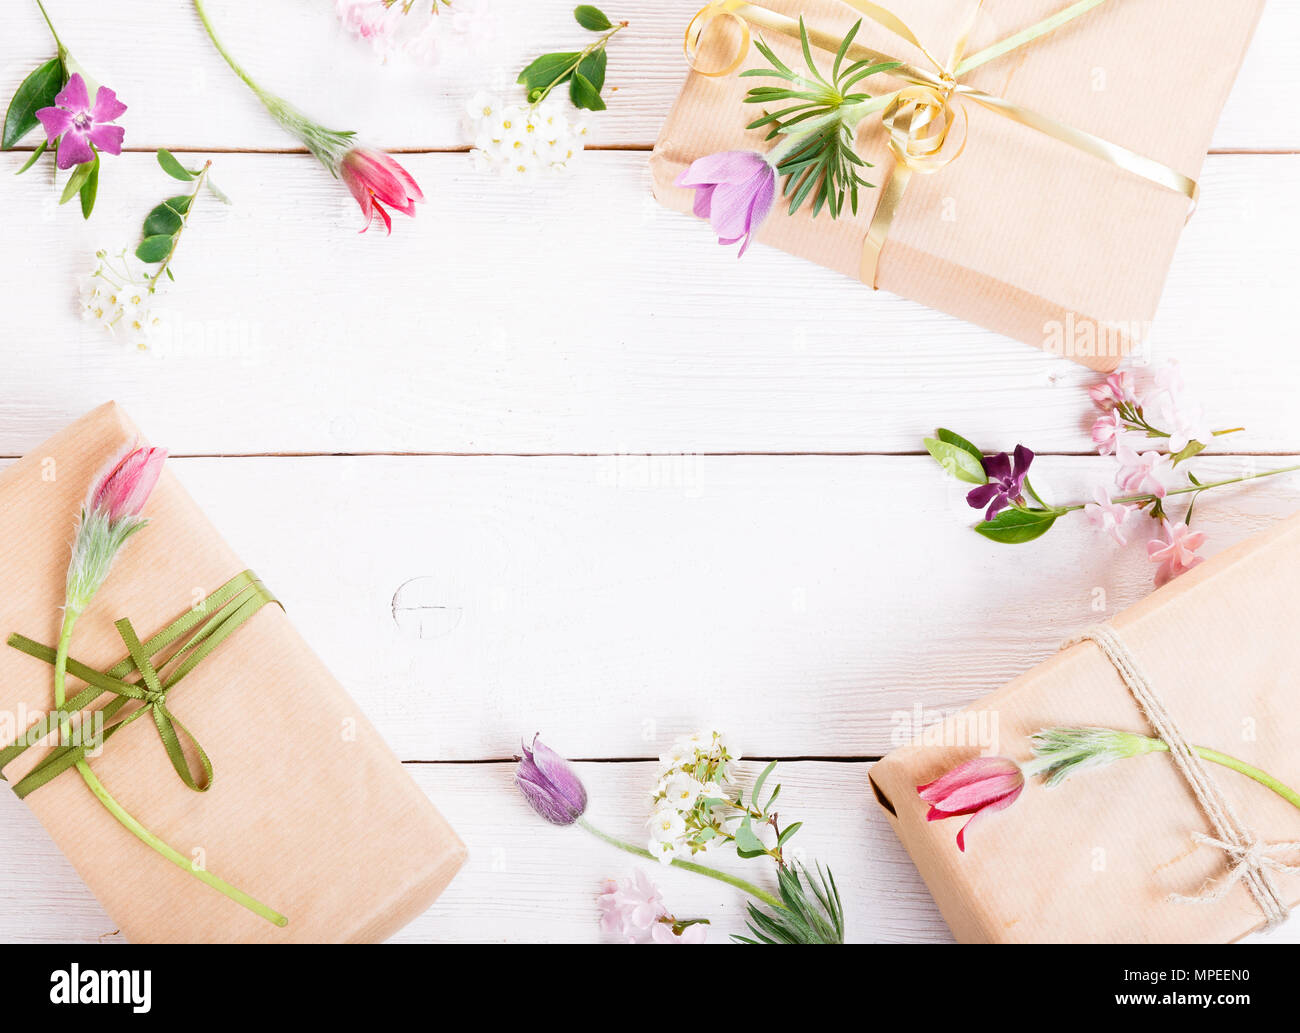 Gift and roses on wooden white background. Workspace. Top view, flat lay Stock Photo